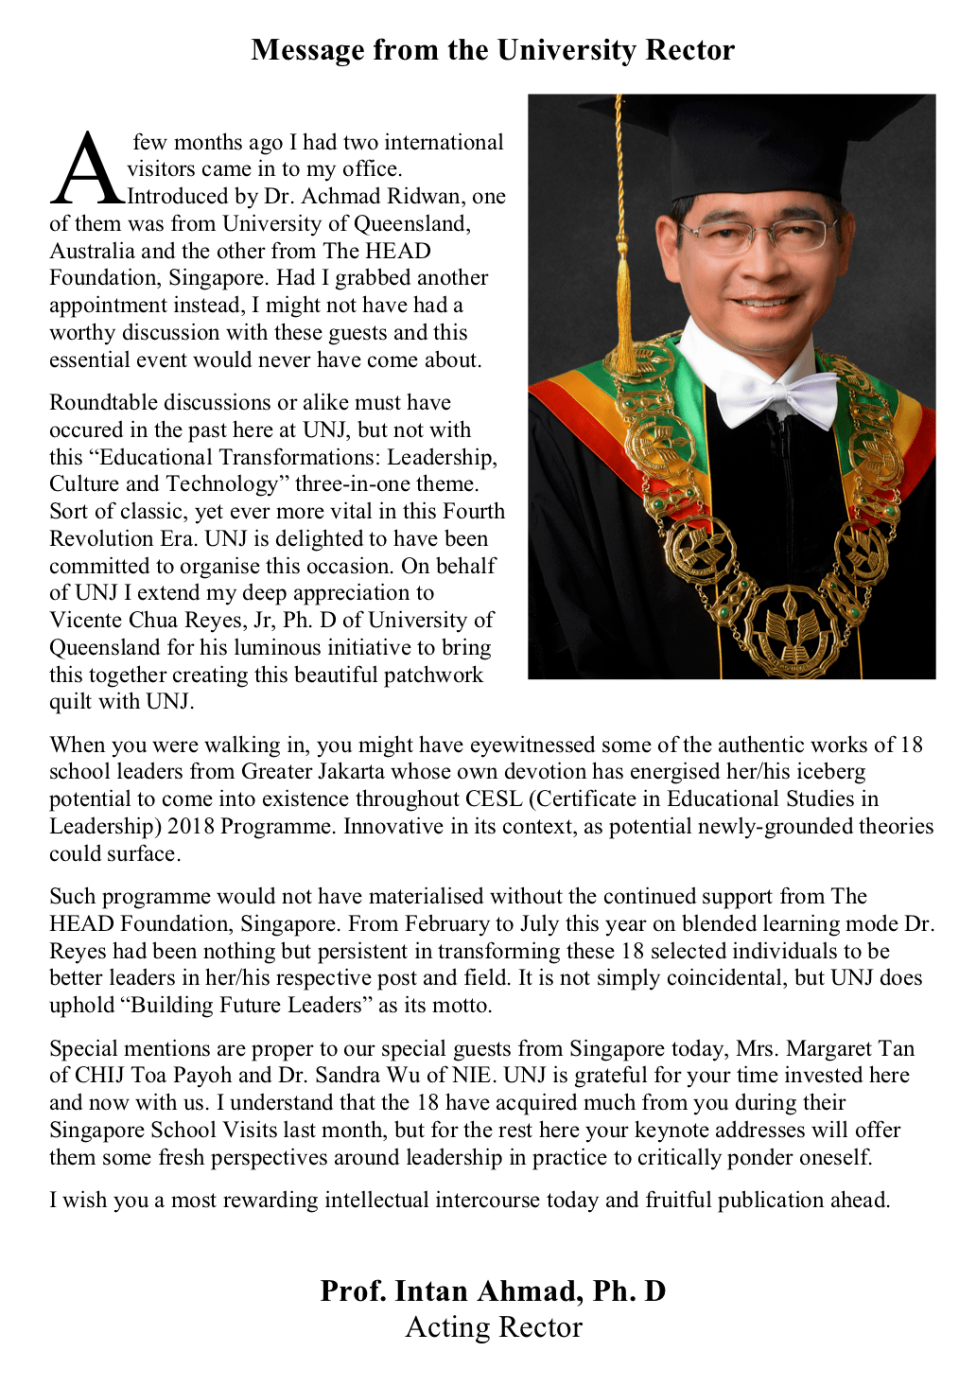 message-from-rector-unj1-e1535560036946.png